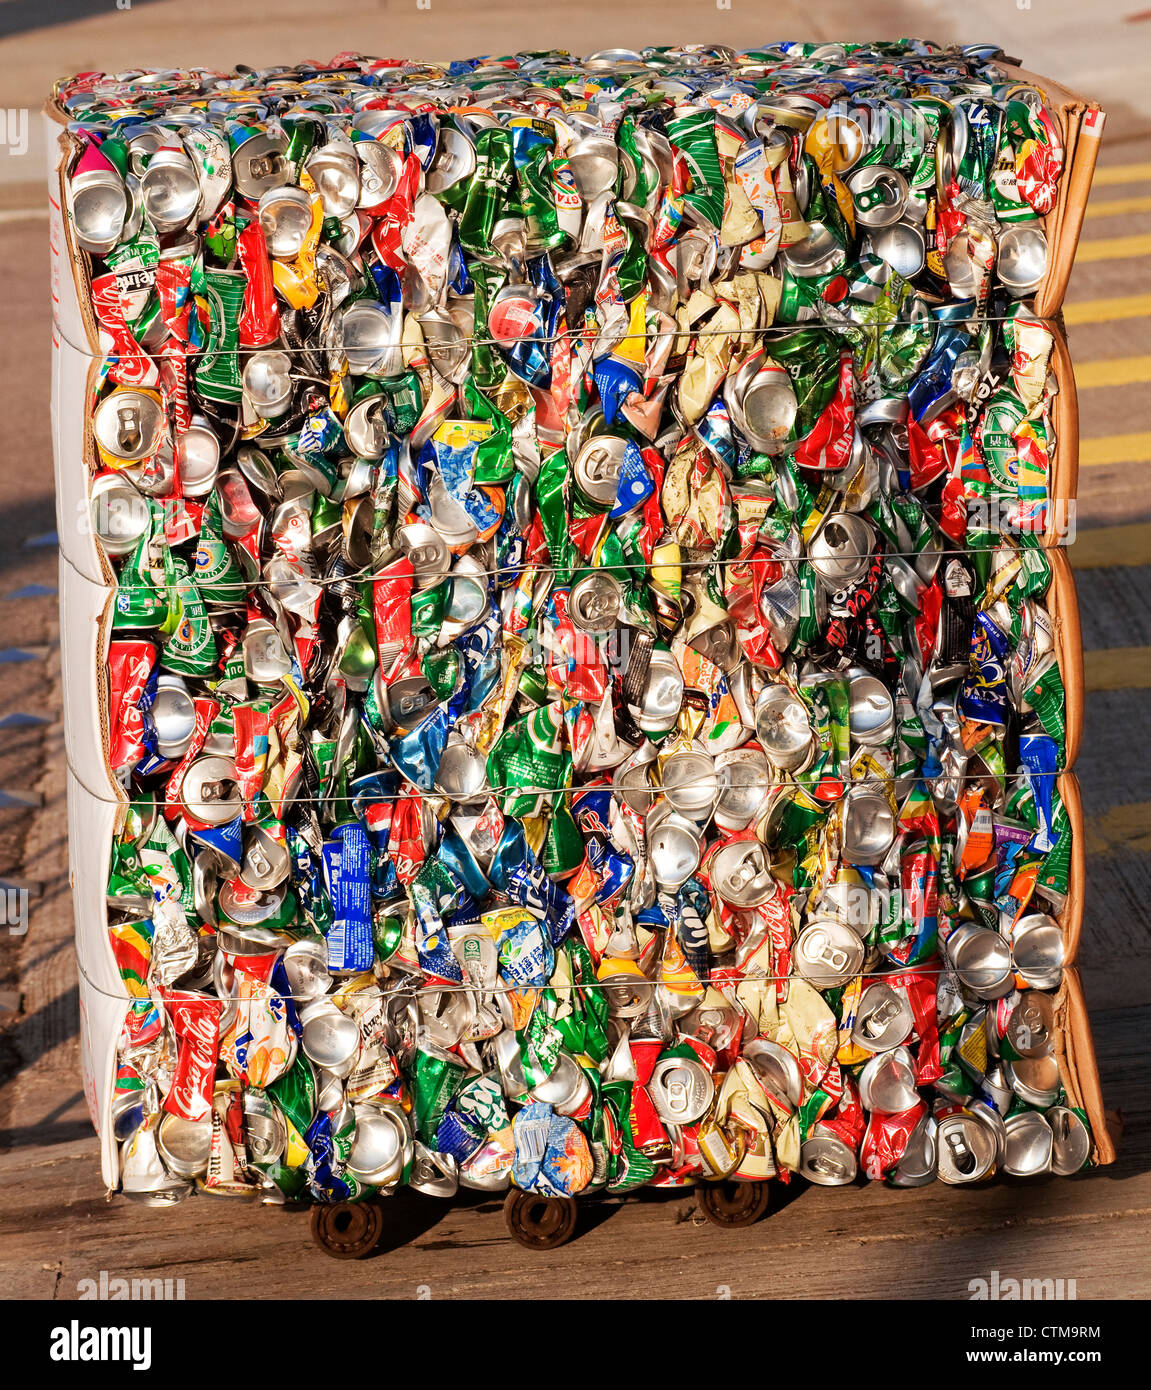 Crushed aluminum cans ready to be recycled, Hong Kong, China. - Stock Image